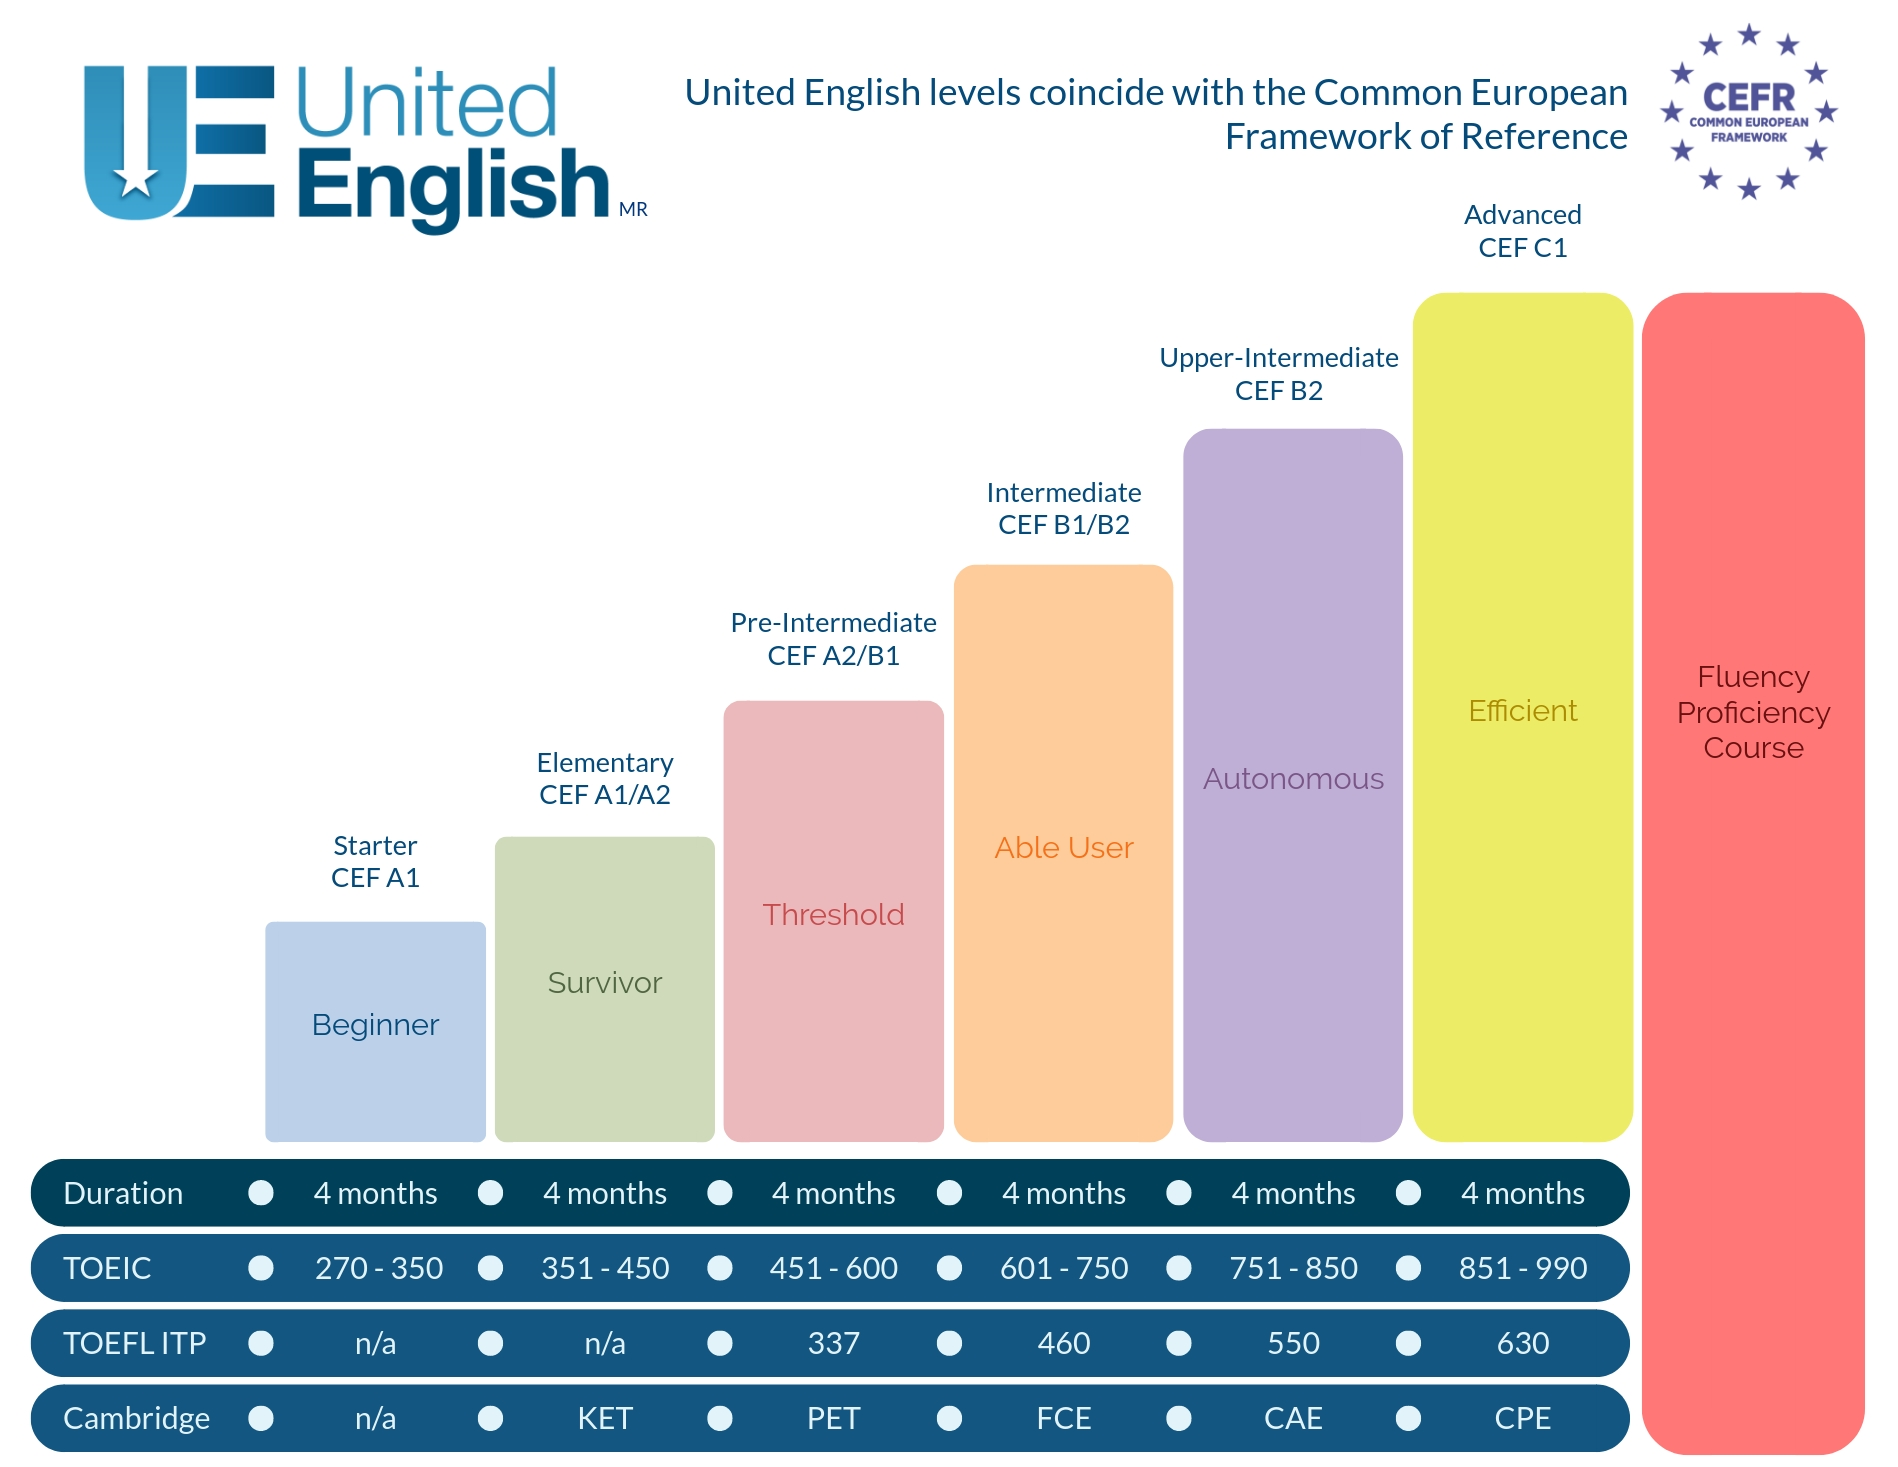 The United English levels system